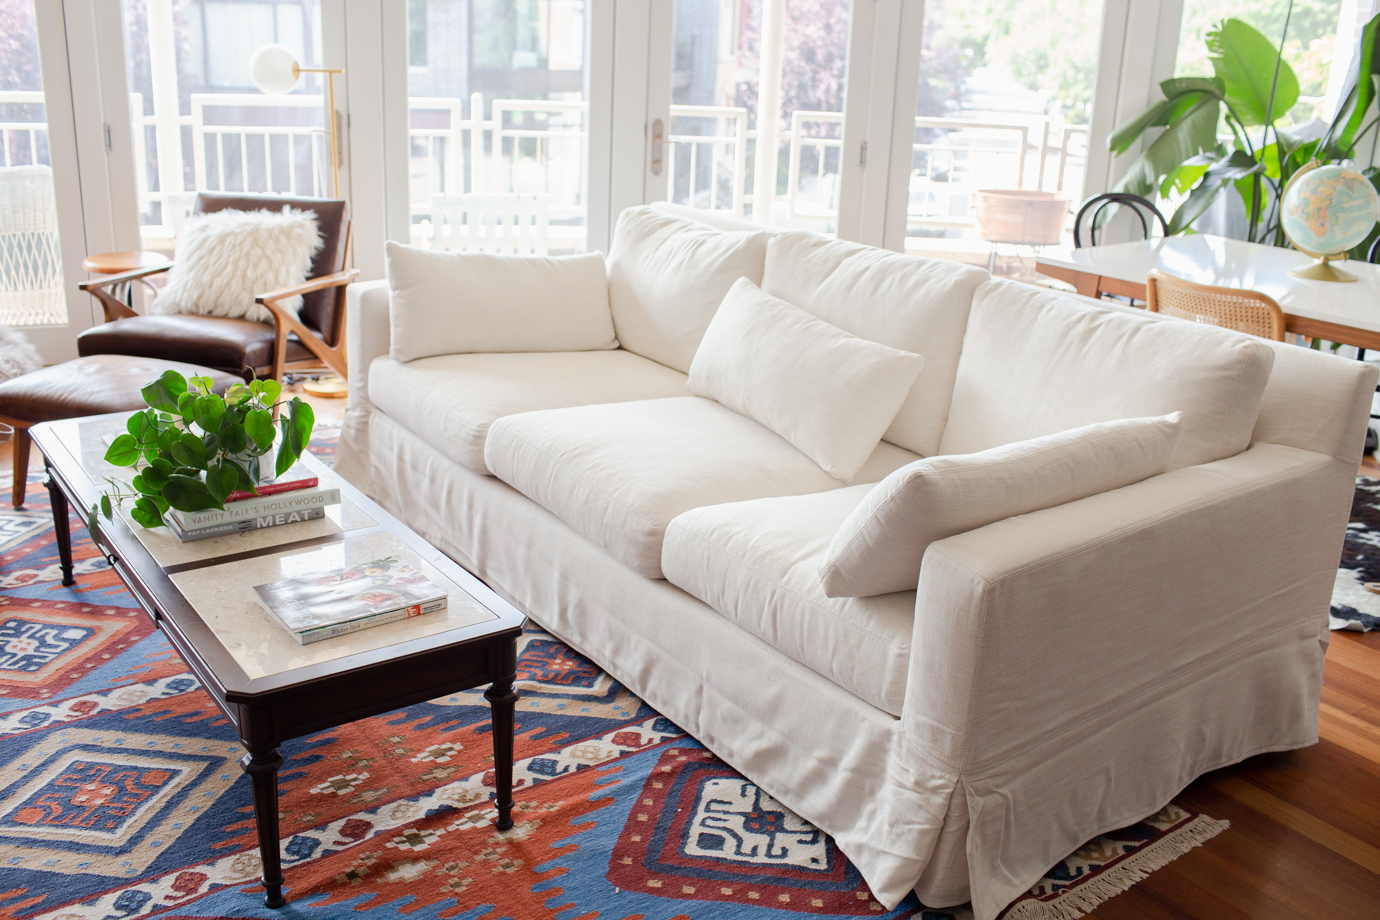 Sofas And Stuff Reviews How To Choose The Perfect Sofa Pottery Barn York Sofa Review